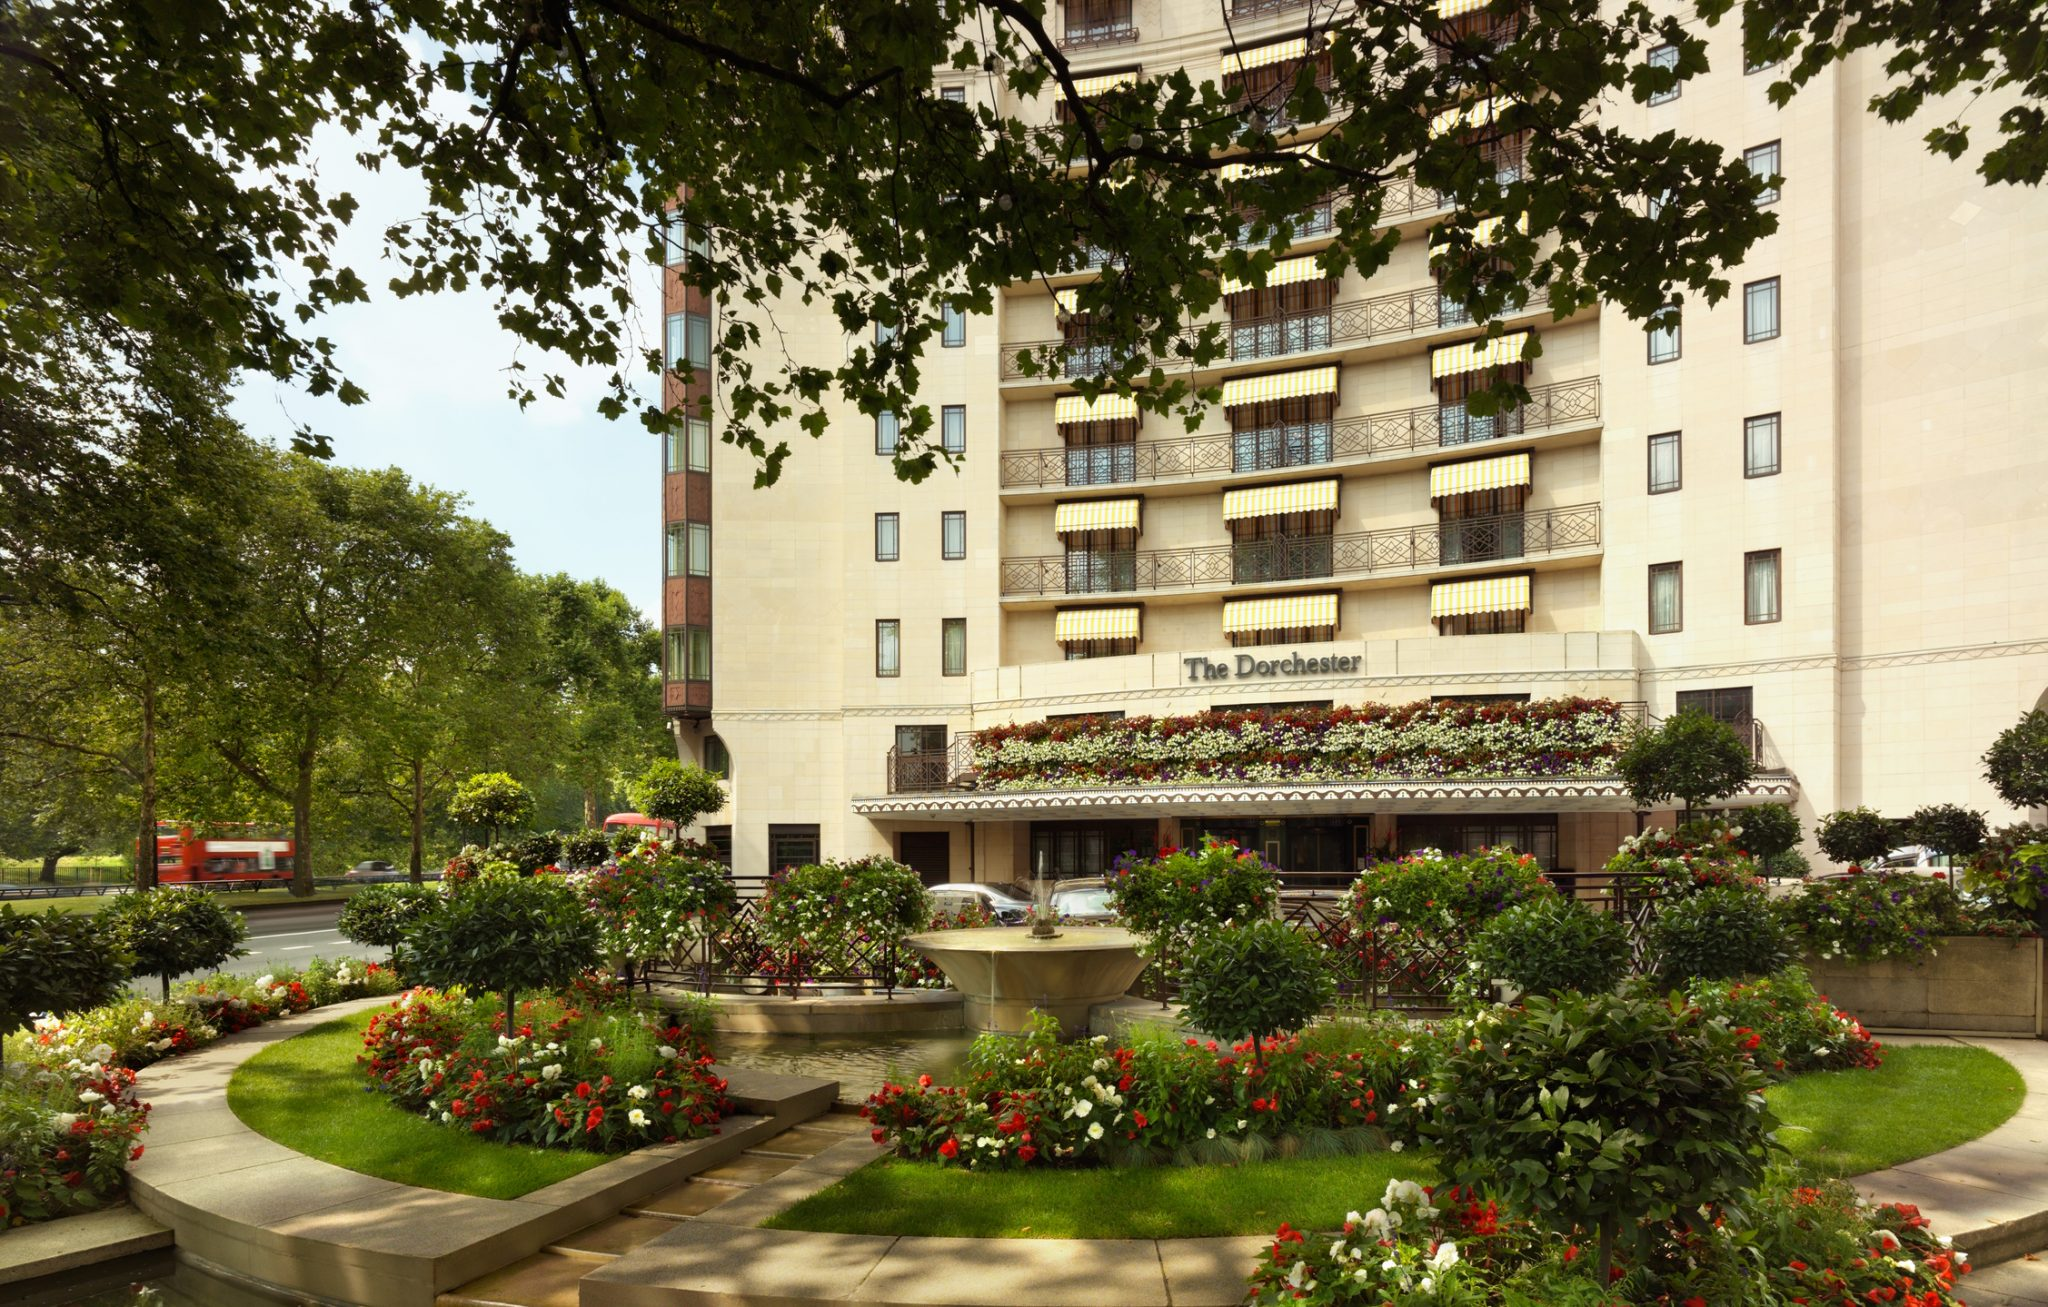 h0bms 68677066 the dorchester   exterior landscape high res - Hotel The Dorchester terá área especial no Chelsea Flower Show 2018